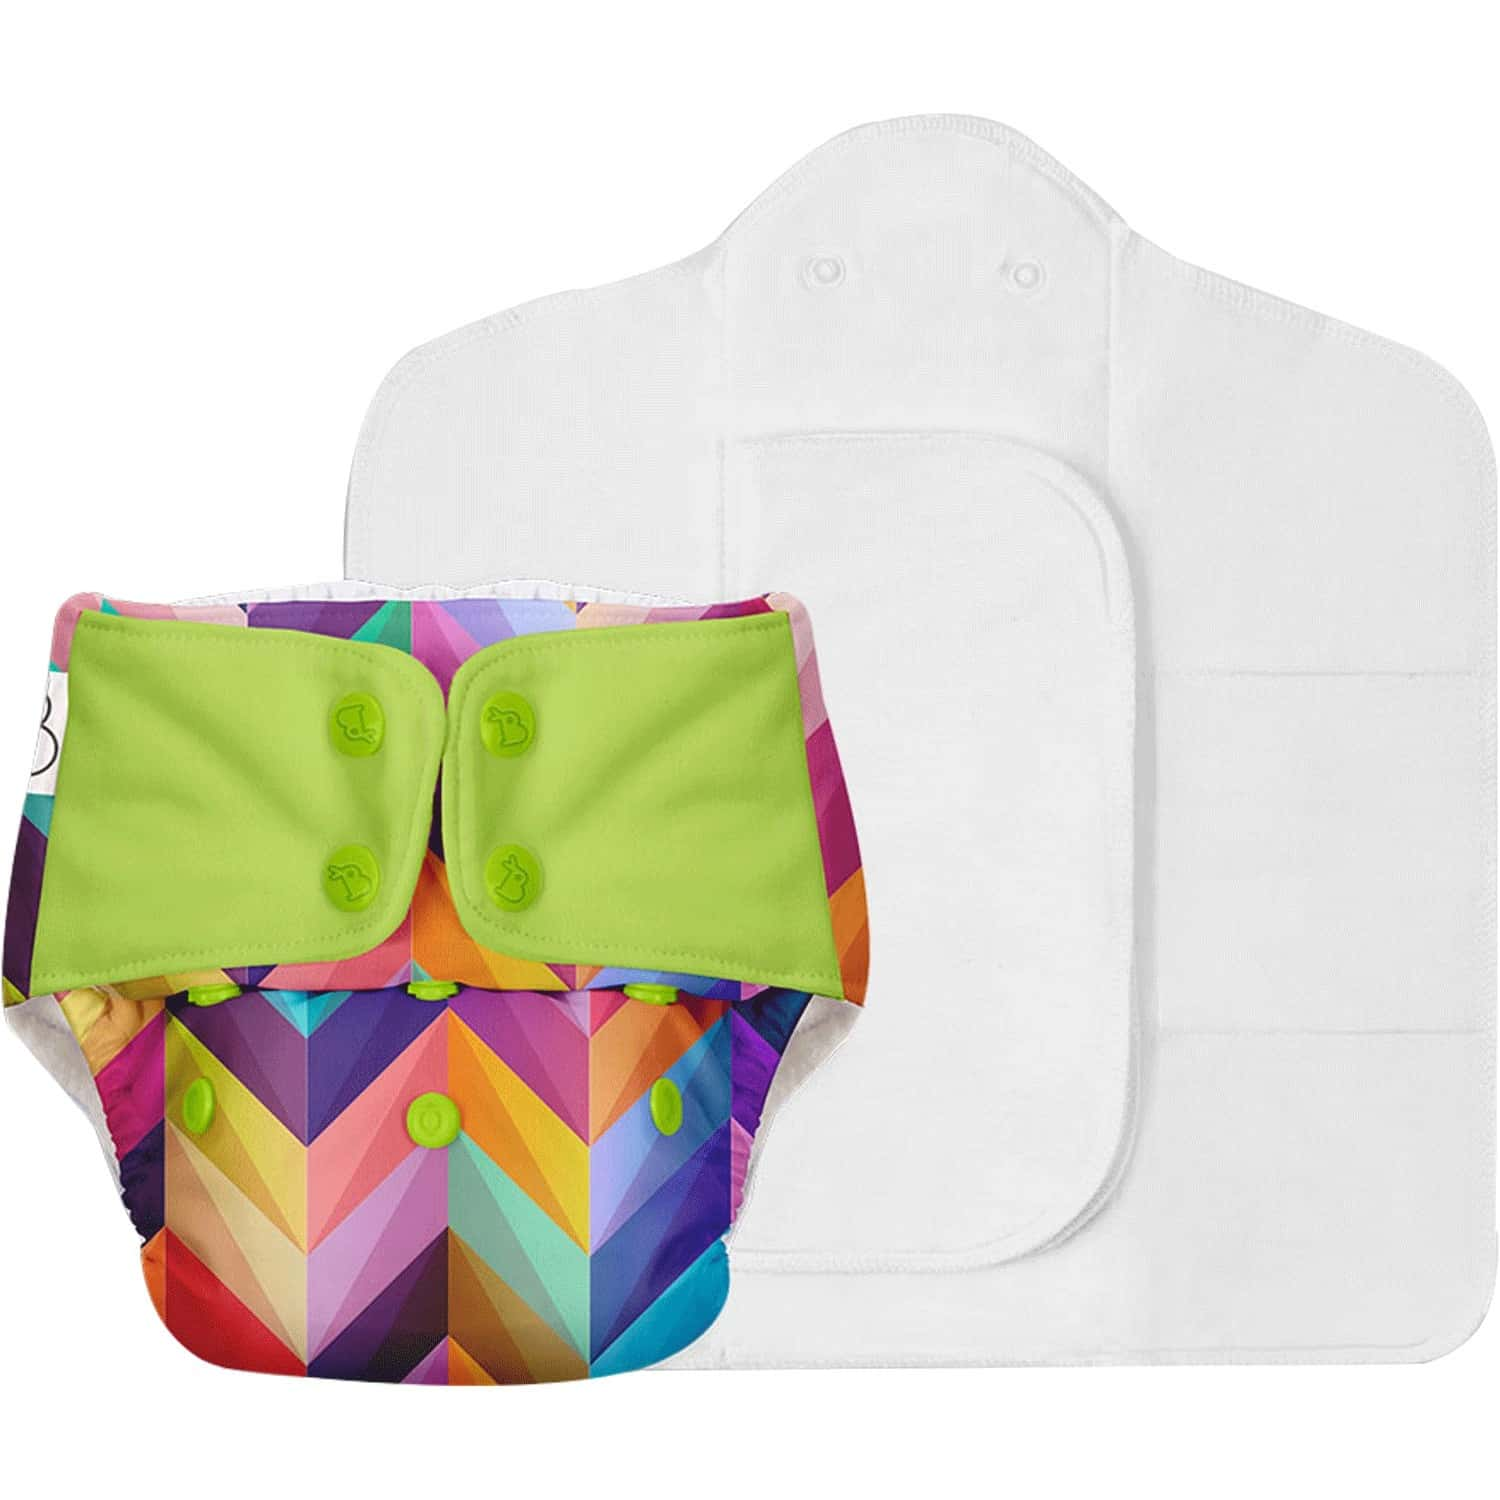 Superbottoms Freesize Uno - Reusable Cloth Diaper With Dry Feel Pads Set - Colour Pop